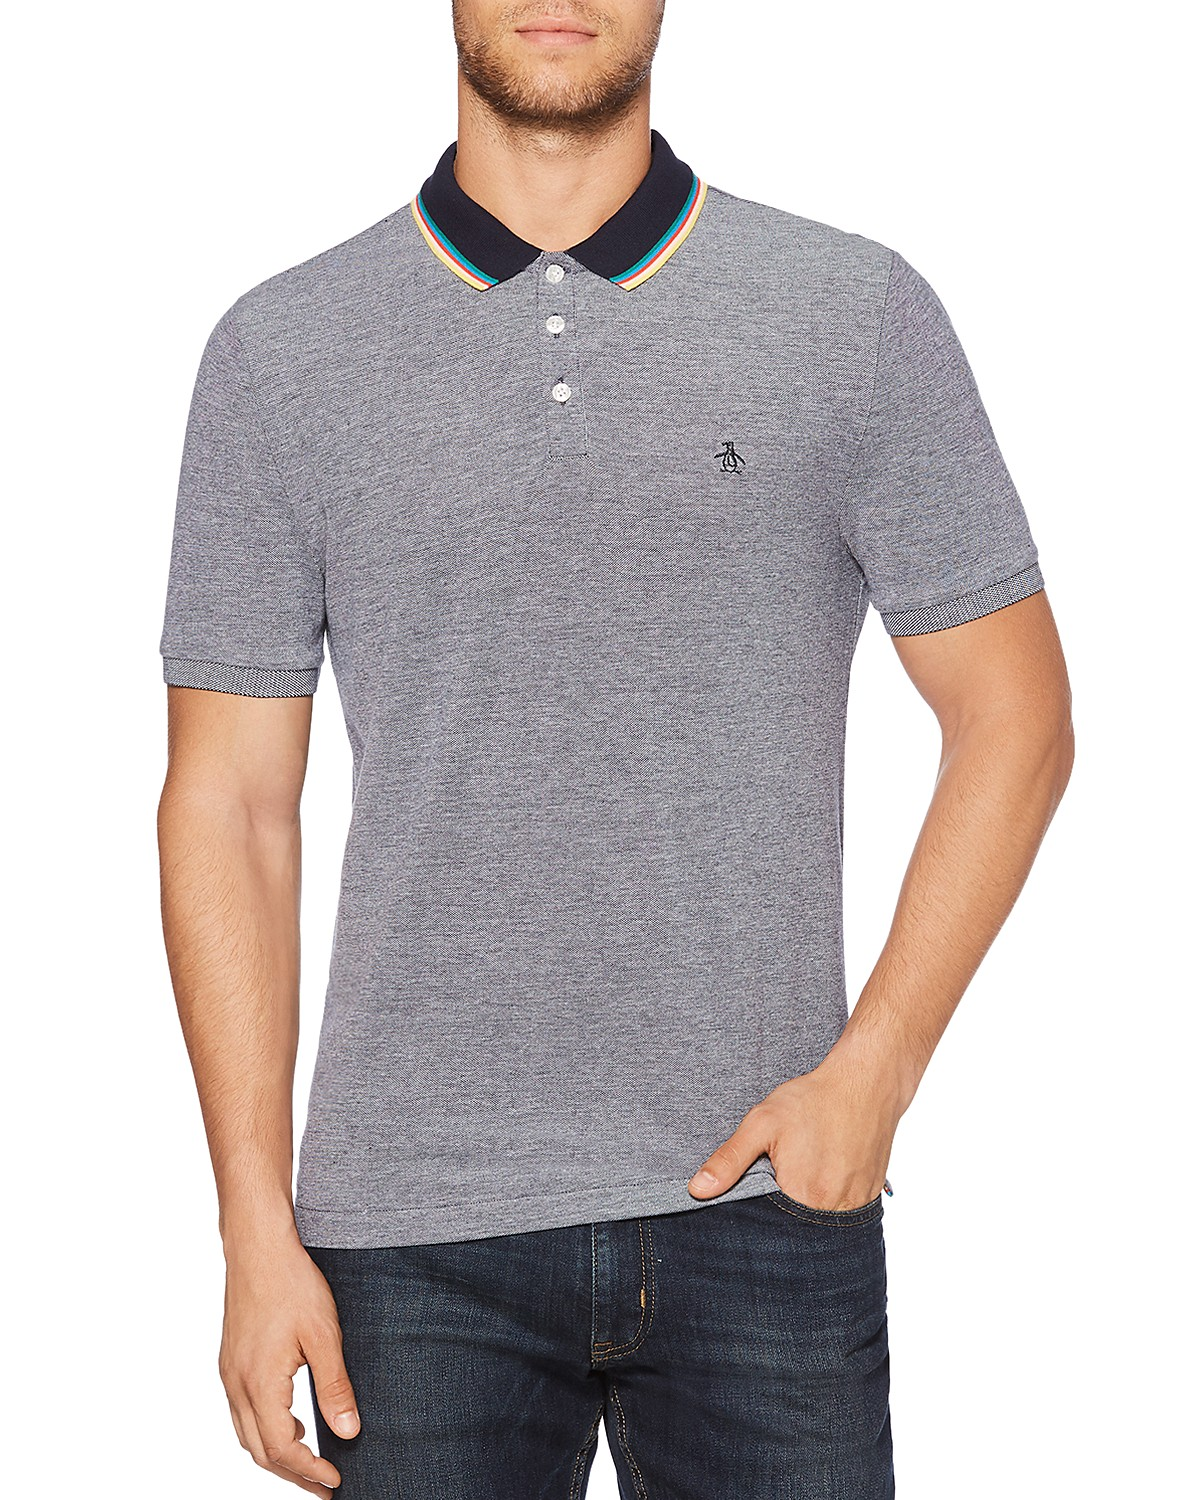 Mens S/S Tipped Birdseye Polo Shirt Original Penguin Clearance Discount Discount For Sale Clearance Shop Offer xW3BNJg